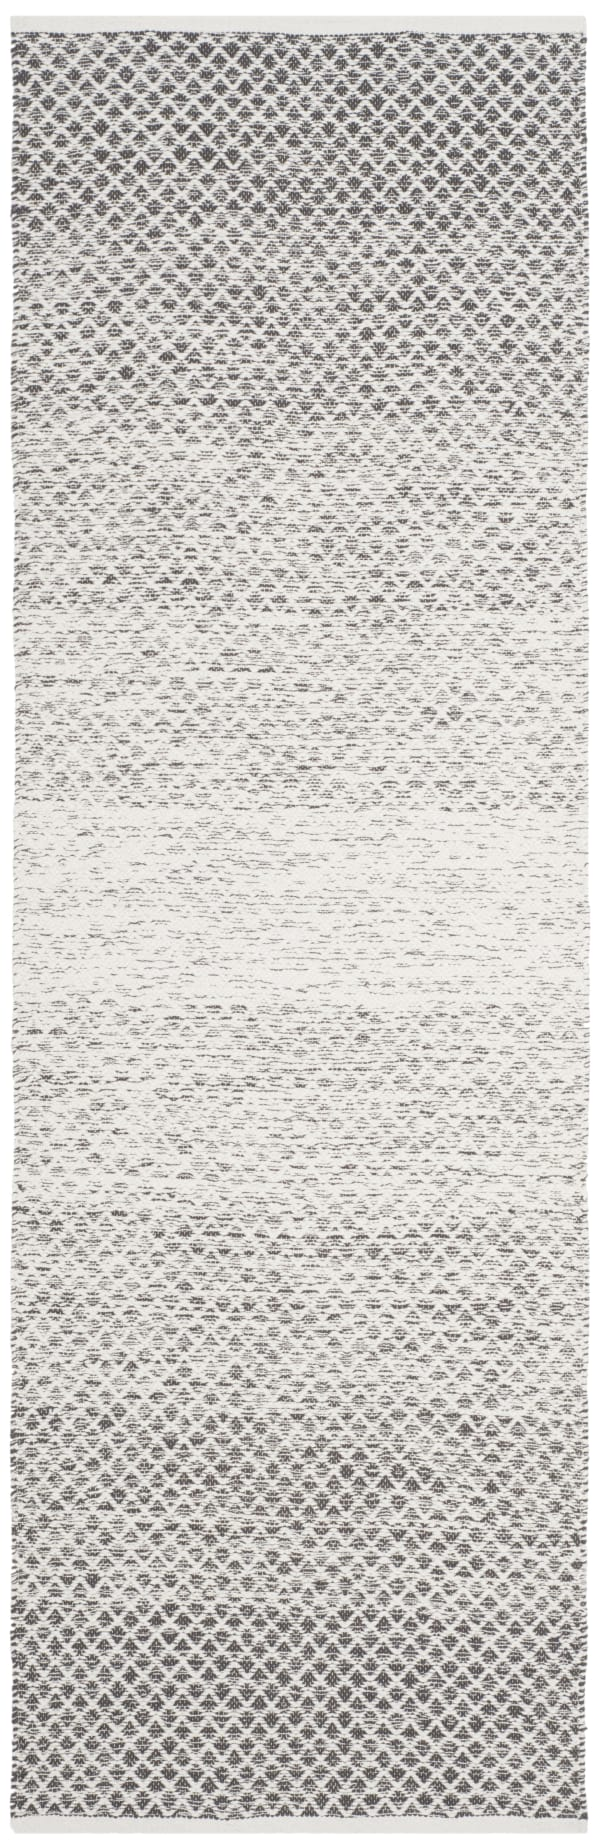 Gray Cotton Rug